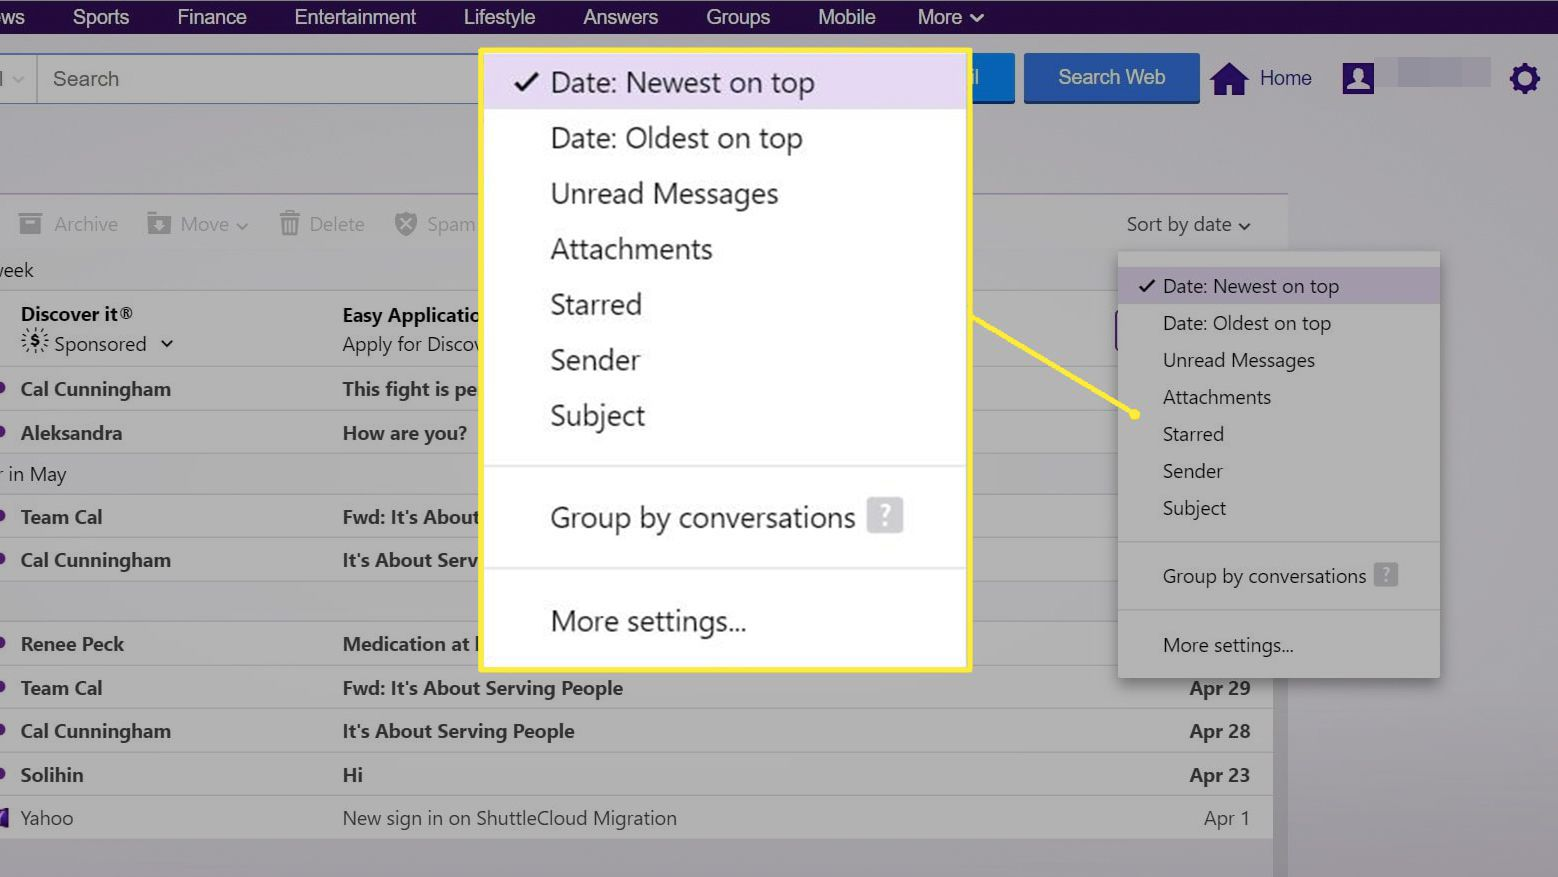 Date: Newest on Top options for email sorting